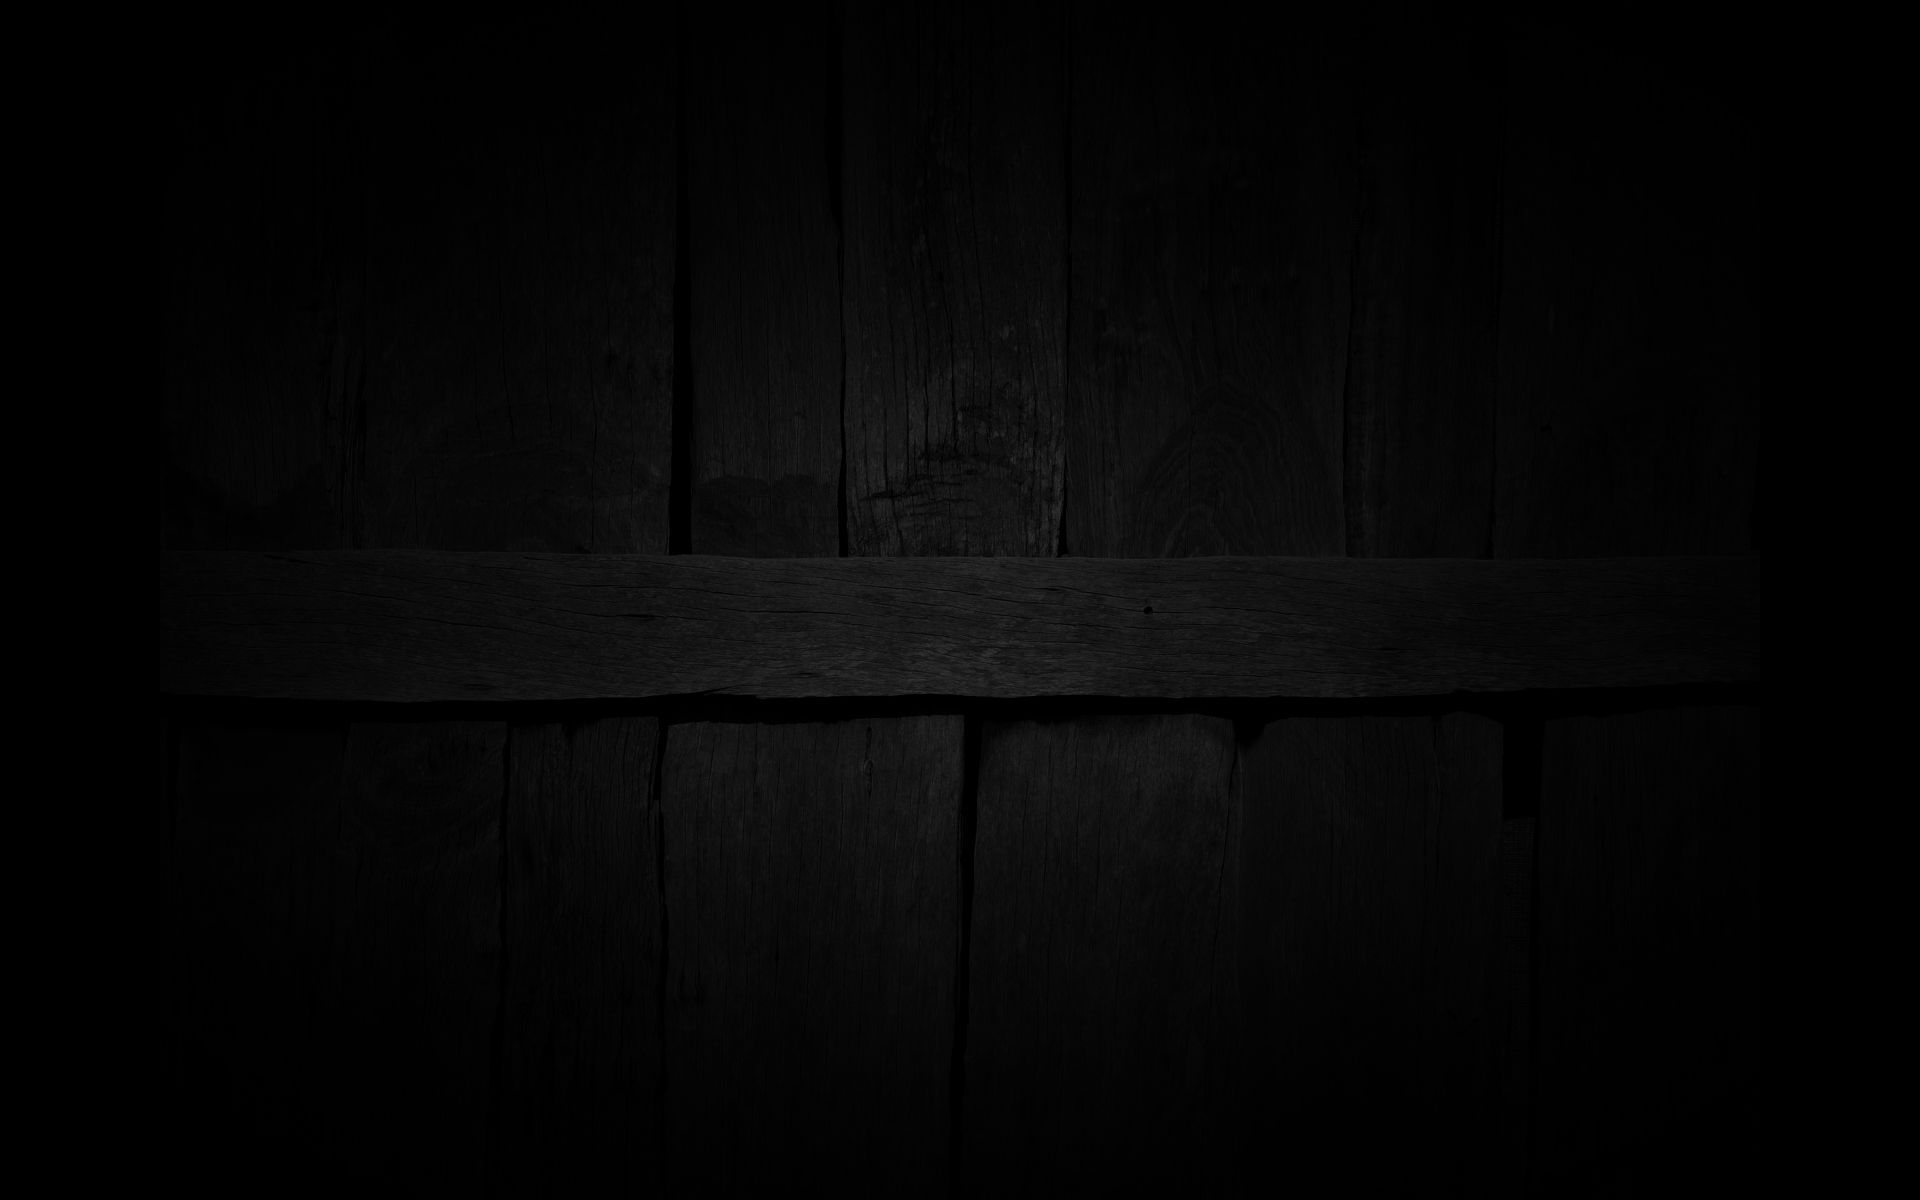 Dark Photography Wallpapers Top Free Dark Photography Backgrounds Wallpaperaccess